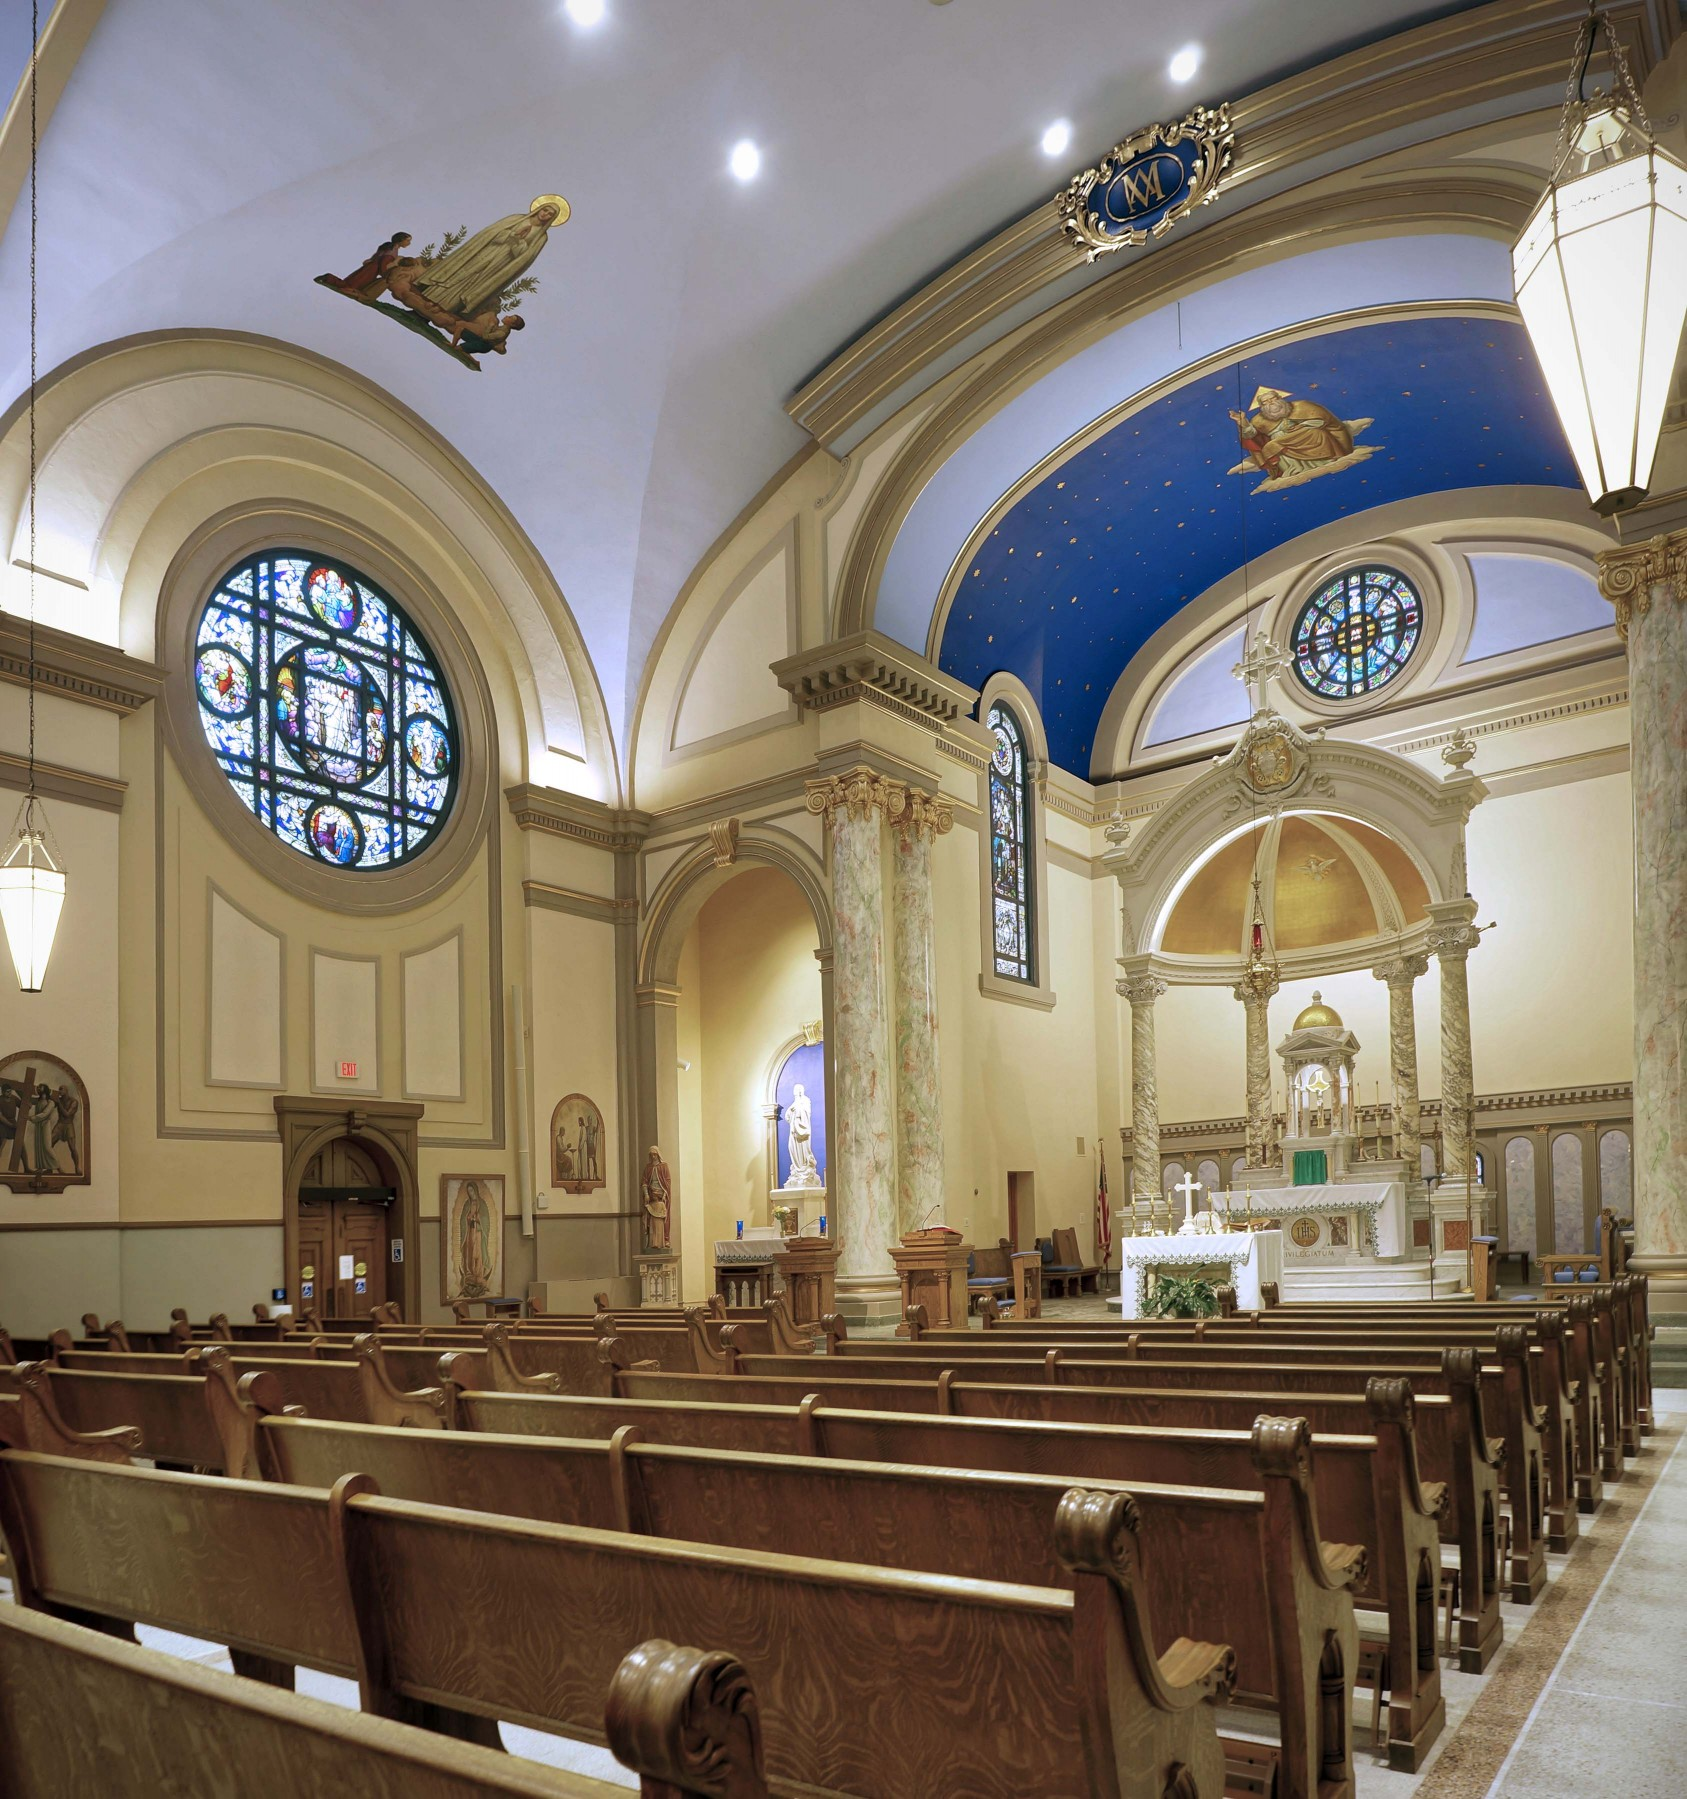 It was time to modernize and repair not only structural elements of the church but also aesthetic elements such as lighting. – Brian Gunning